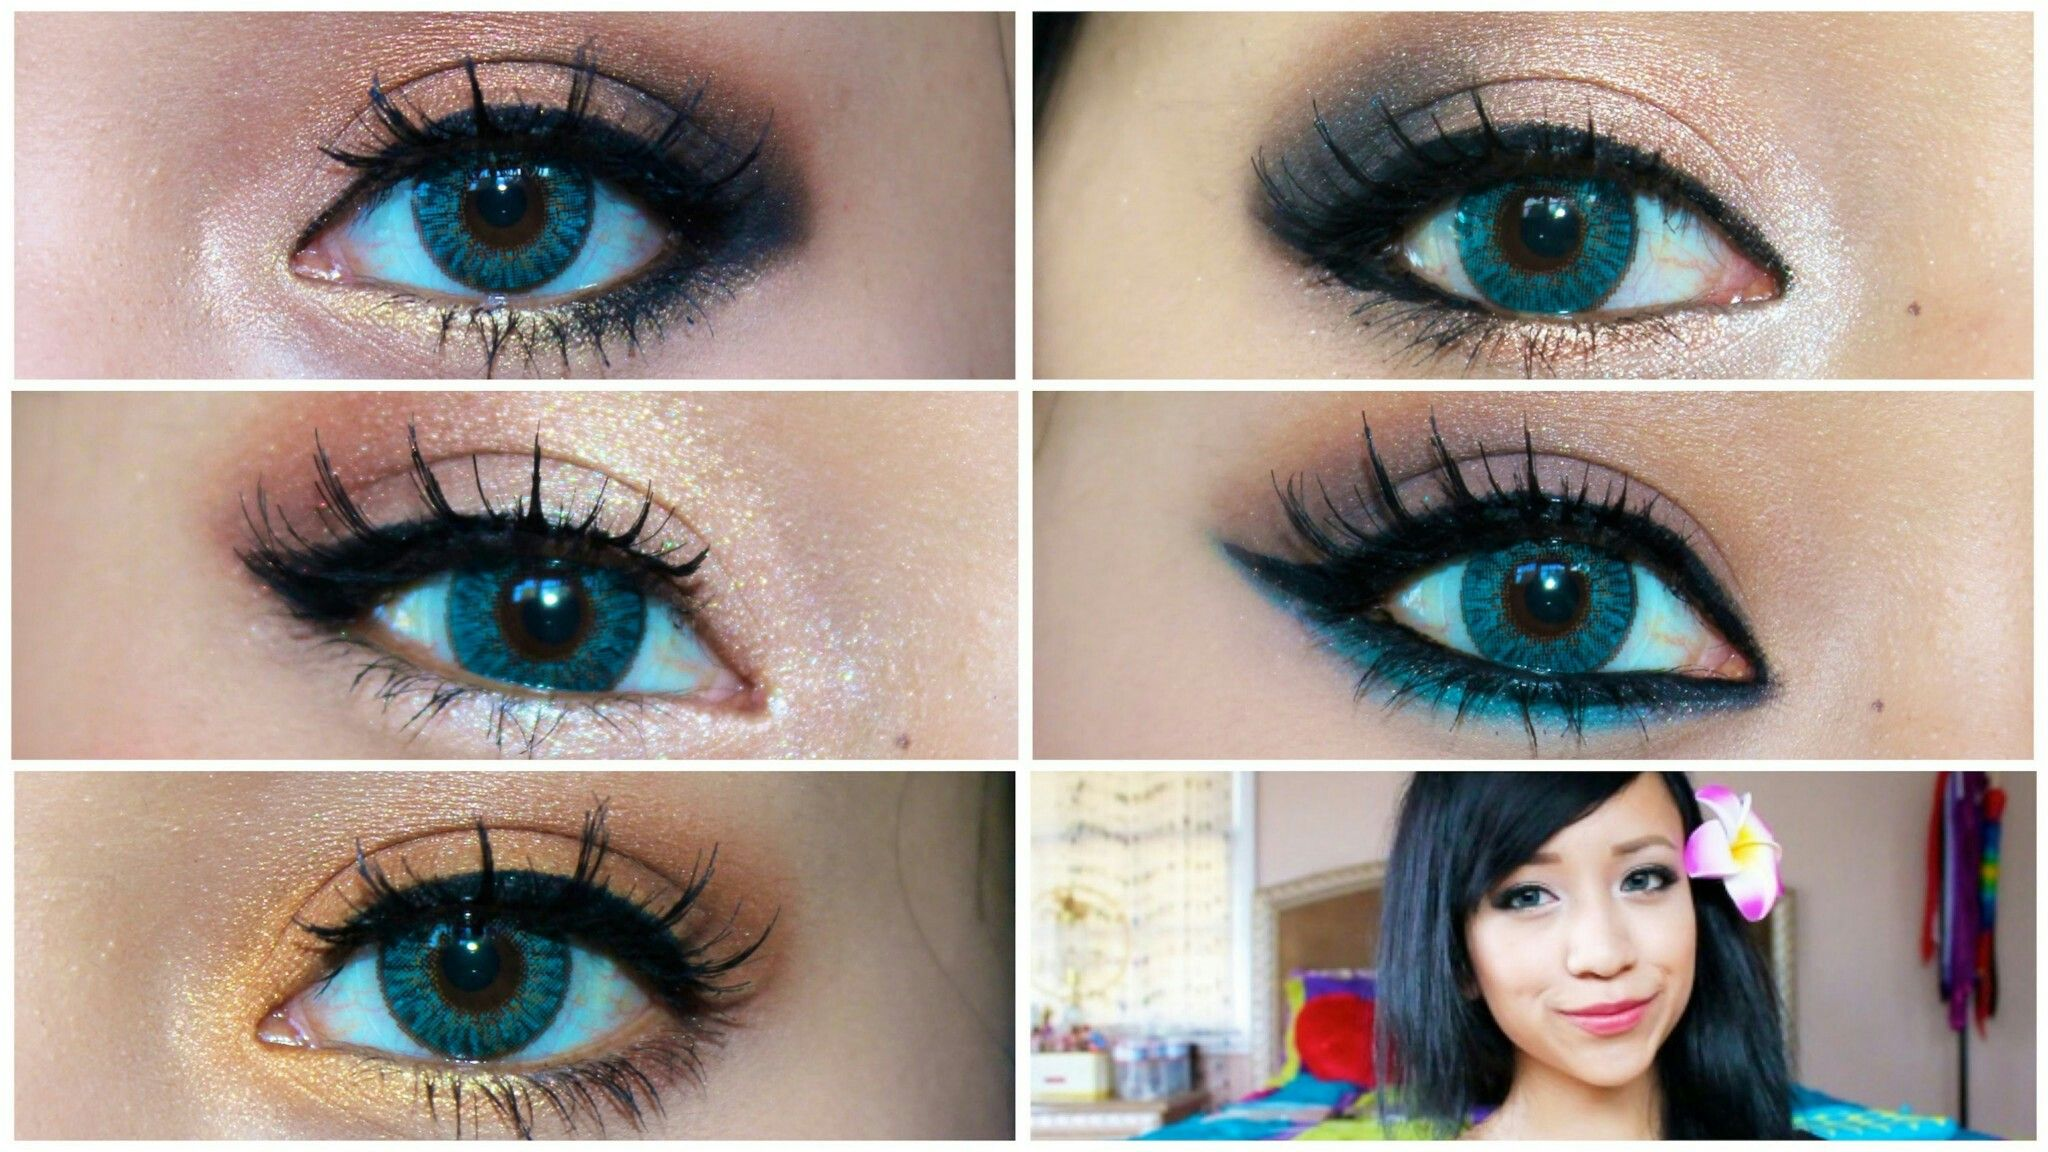 pin by amy ellicott on makeup | eye makeup, natural hair